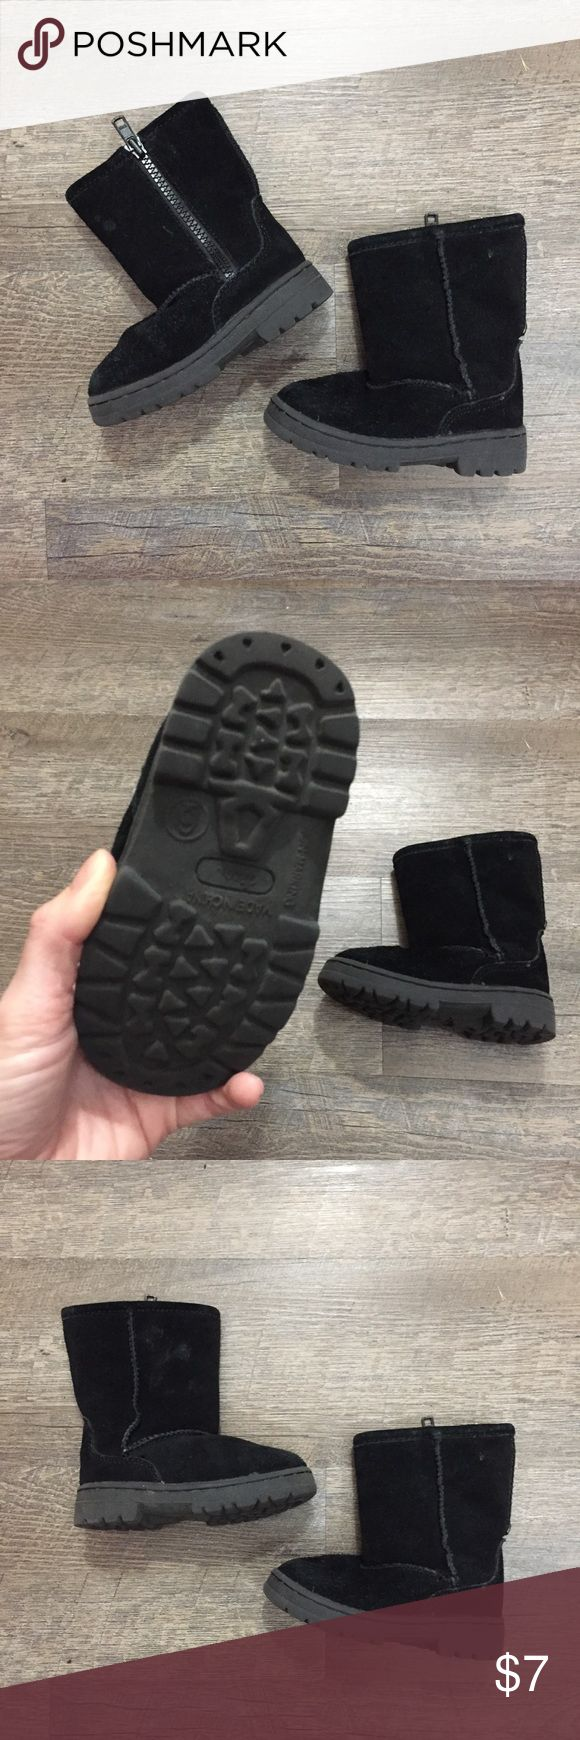 Girls size 6 toddler boots Black toddler boots size 6. (For age 18months-2T) used condition. Shoes Rain & Snow Boots